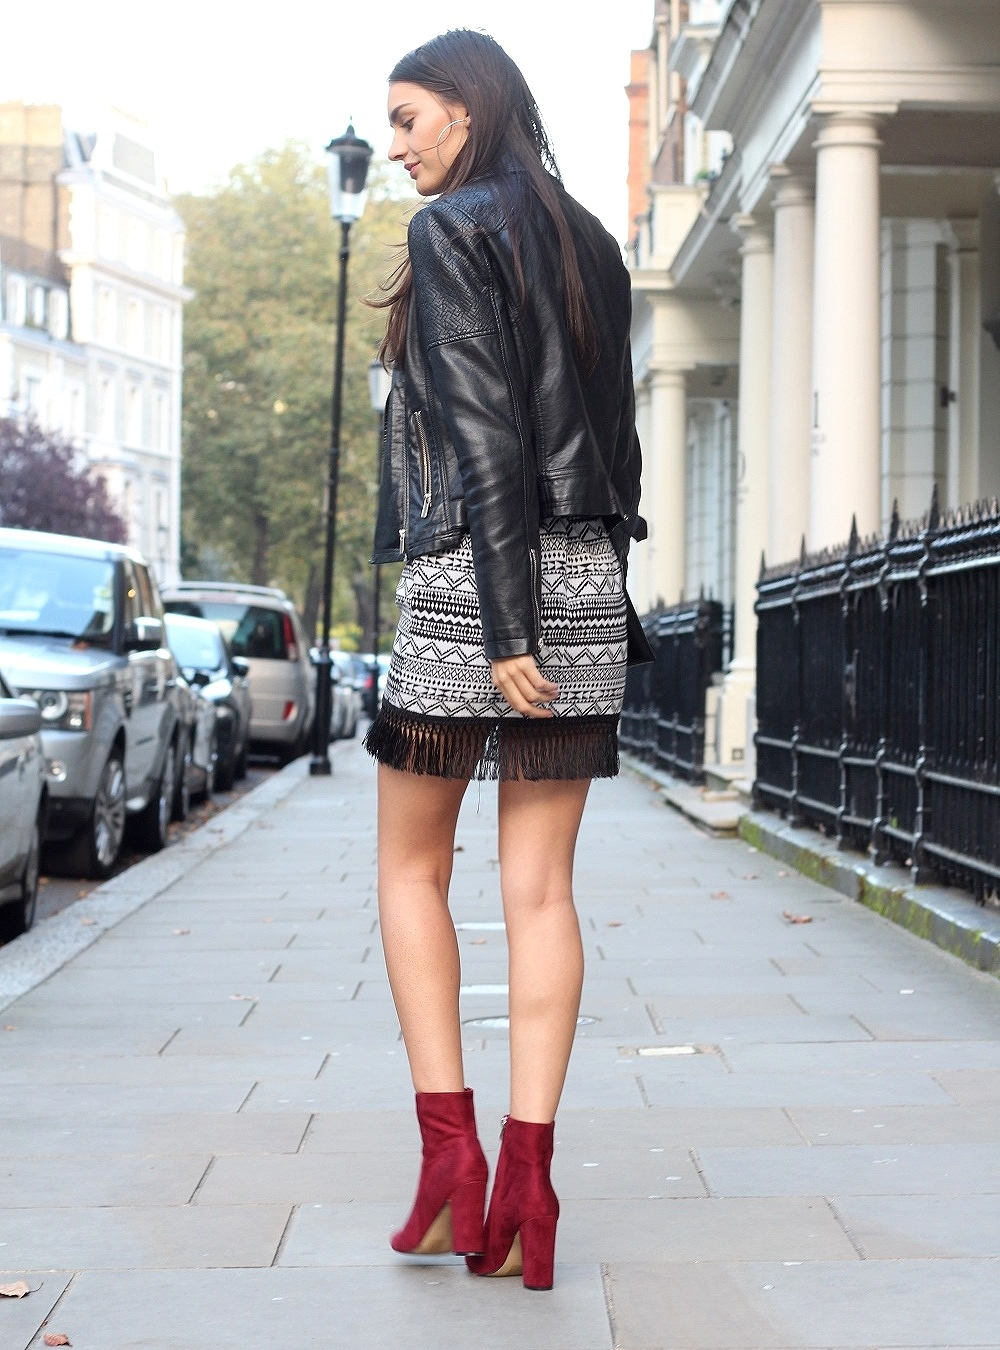 peexo fashion blogger wearing monochrome and aztec and suede burgundy boots